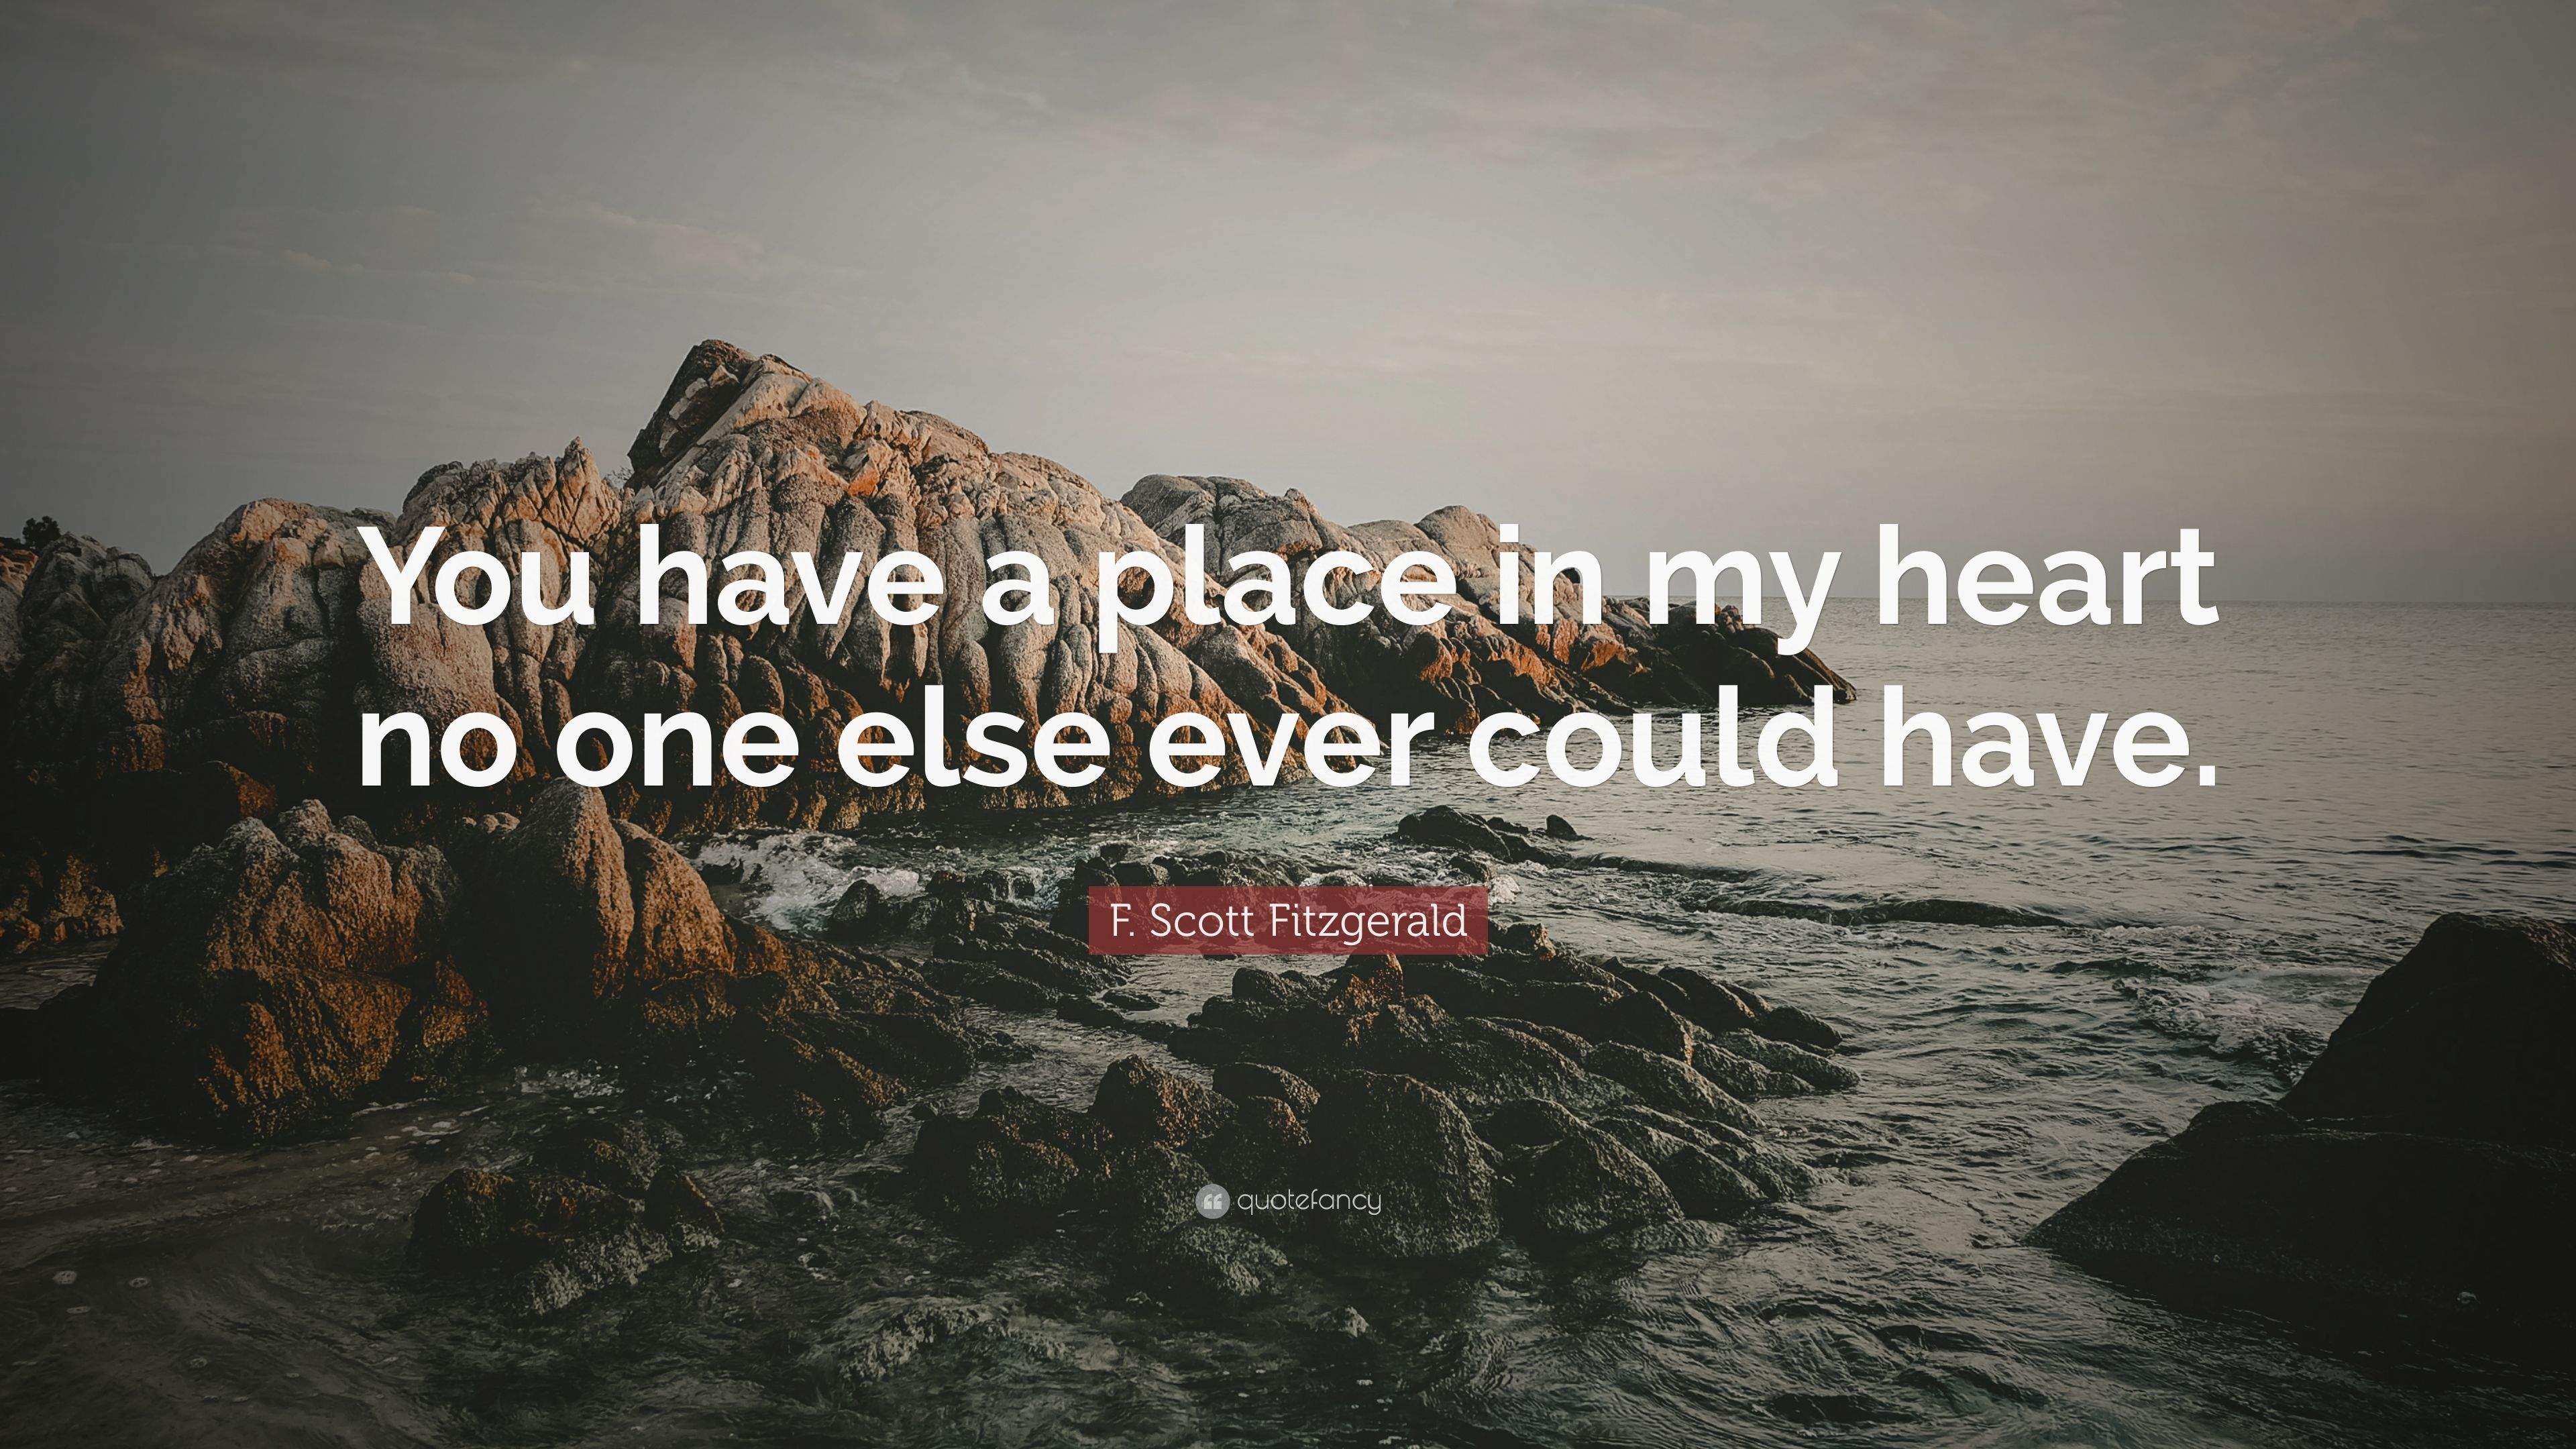 F Scott Fitzgerald Quote You Have A Place In My Heart No One Else